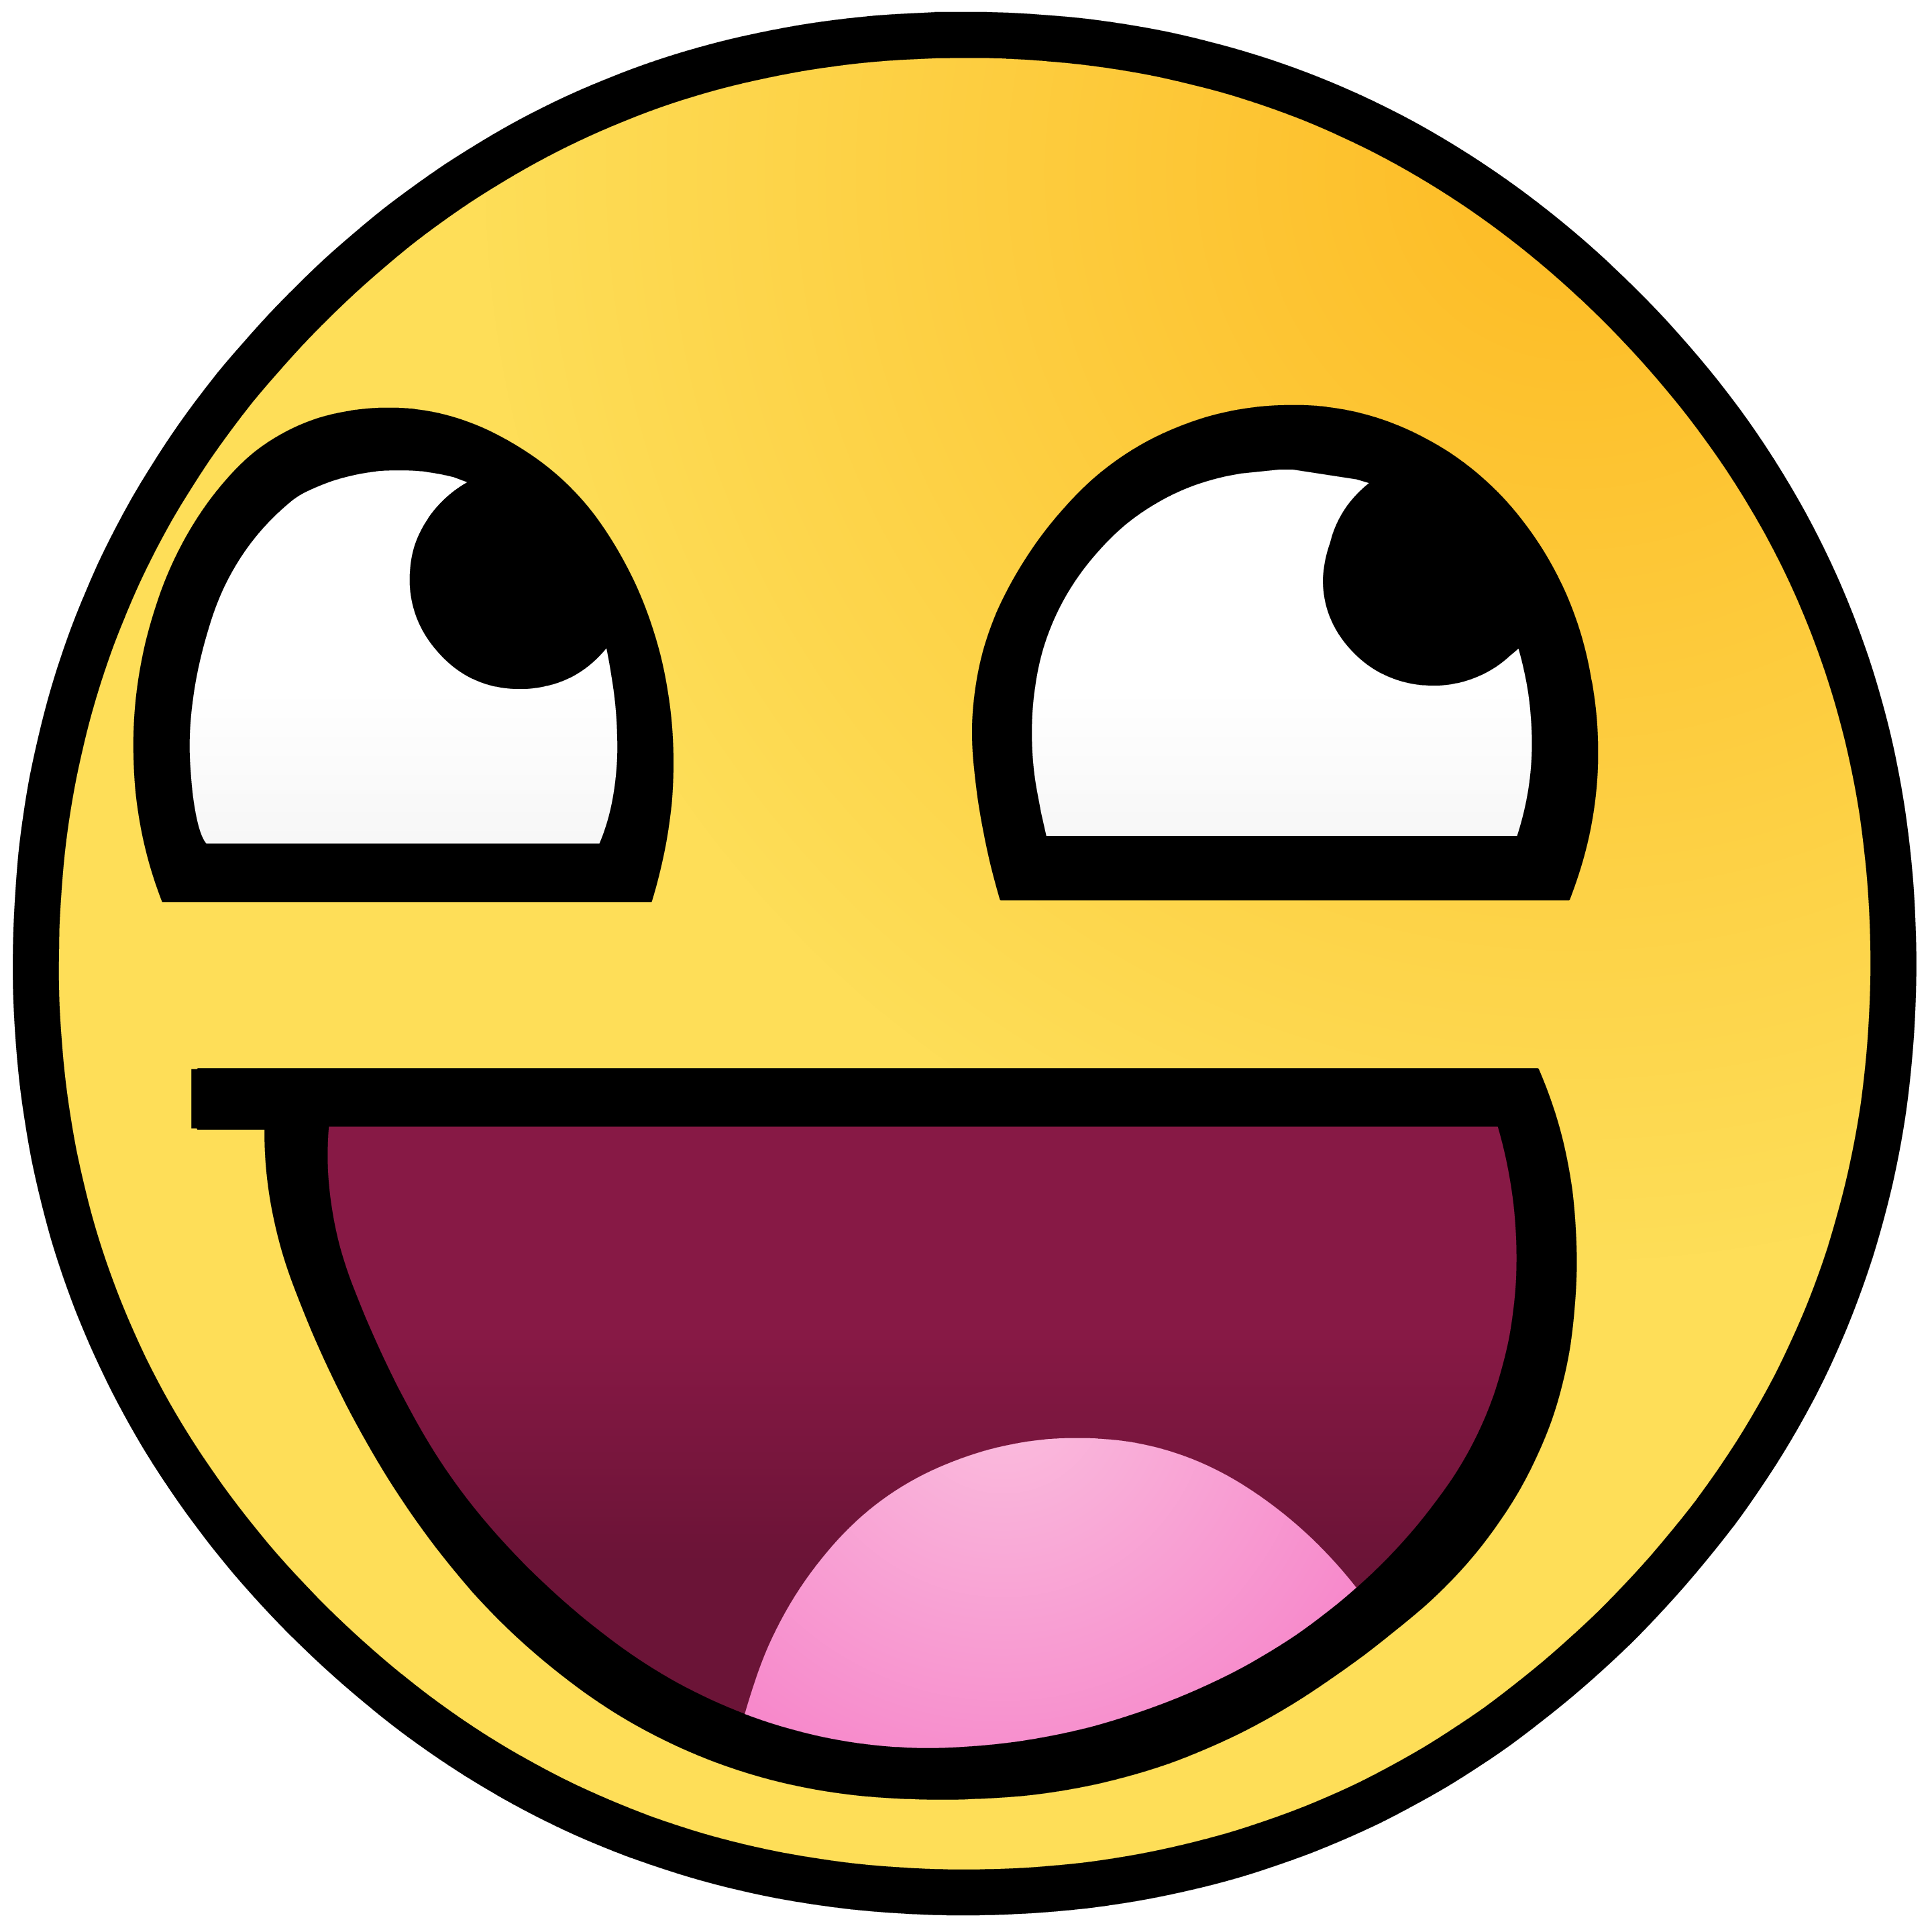 Epic smiley png. Original awesome face know